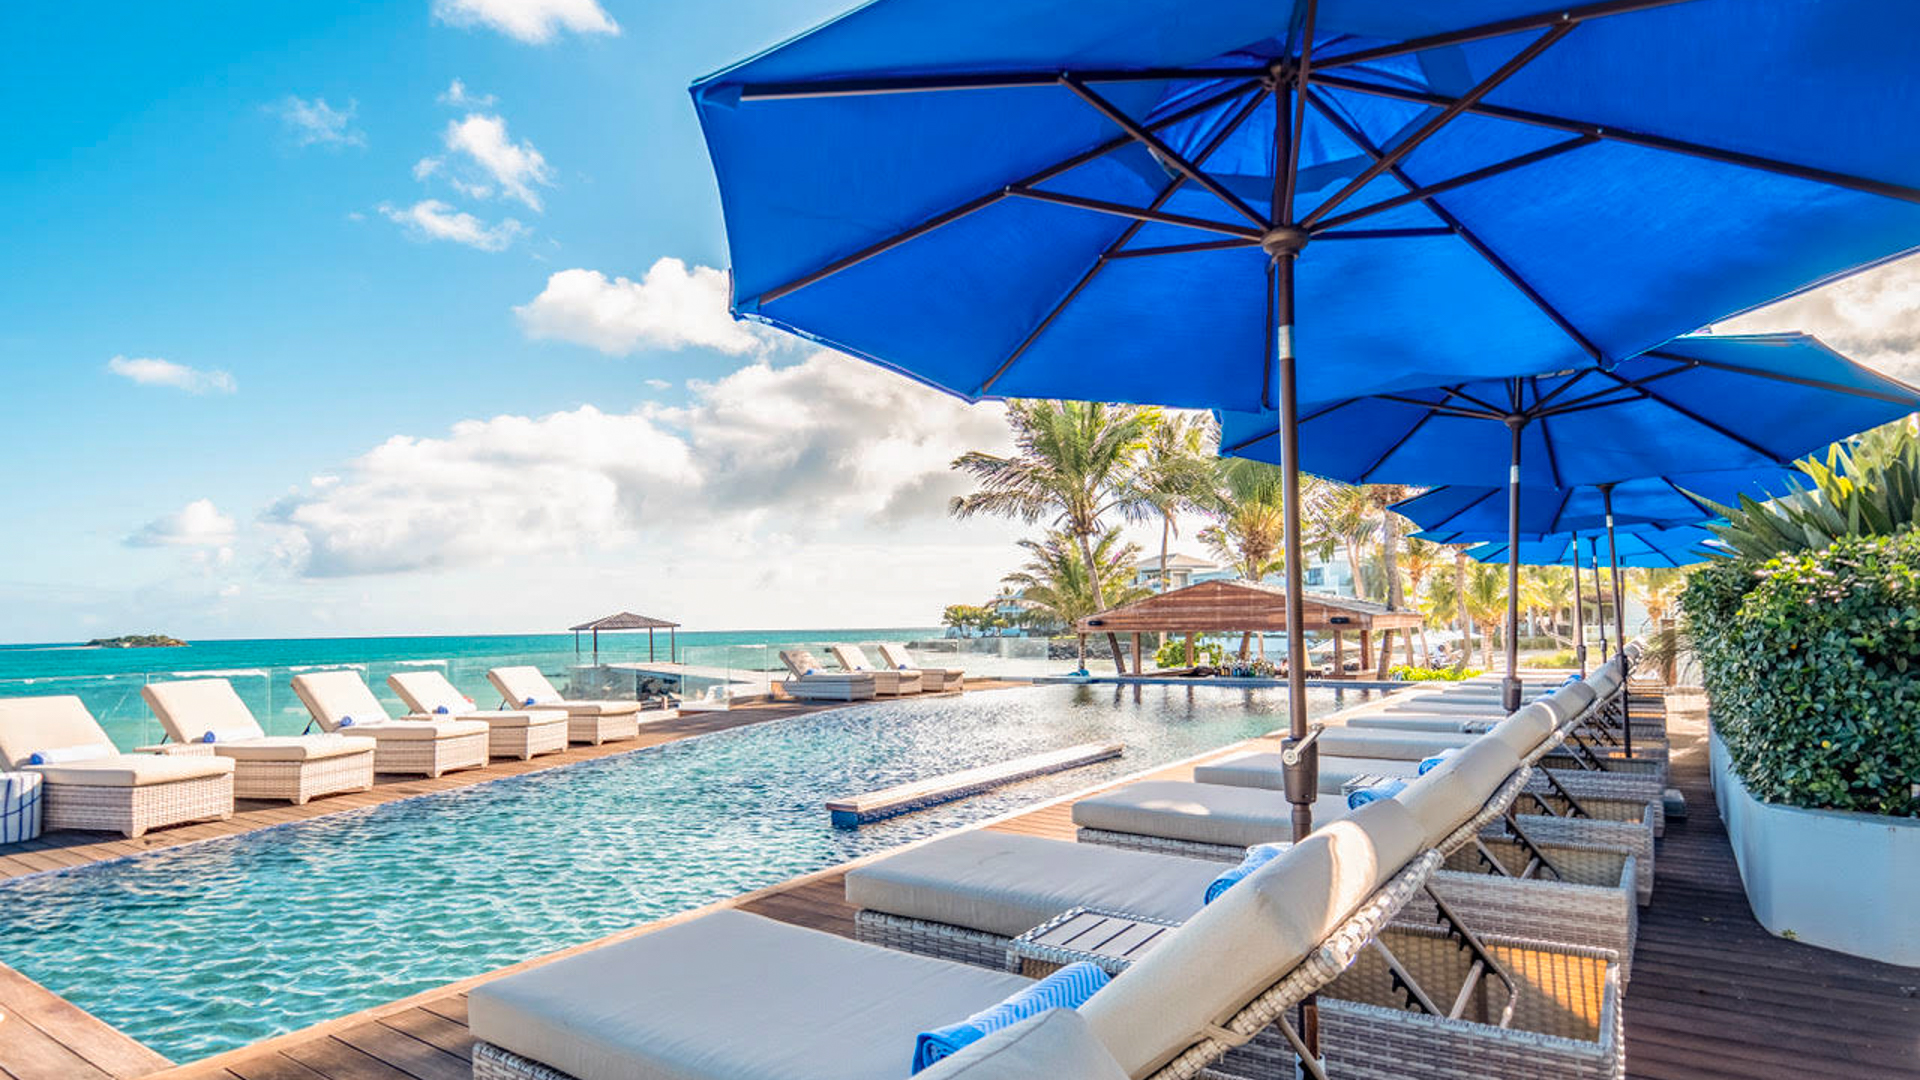 Relax in Utter Luxury at This New $100 Million Caribbean Resort